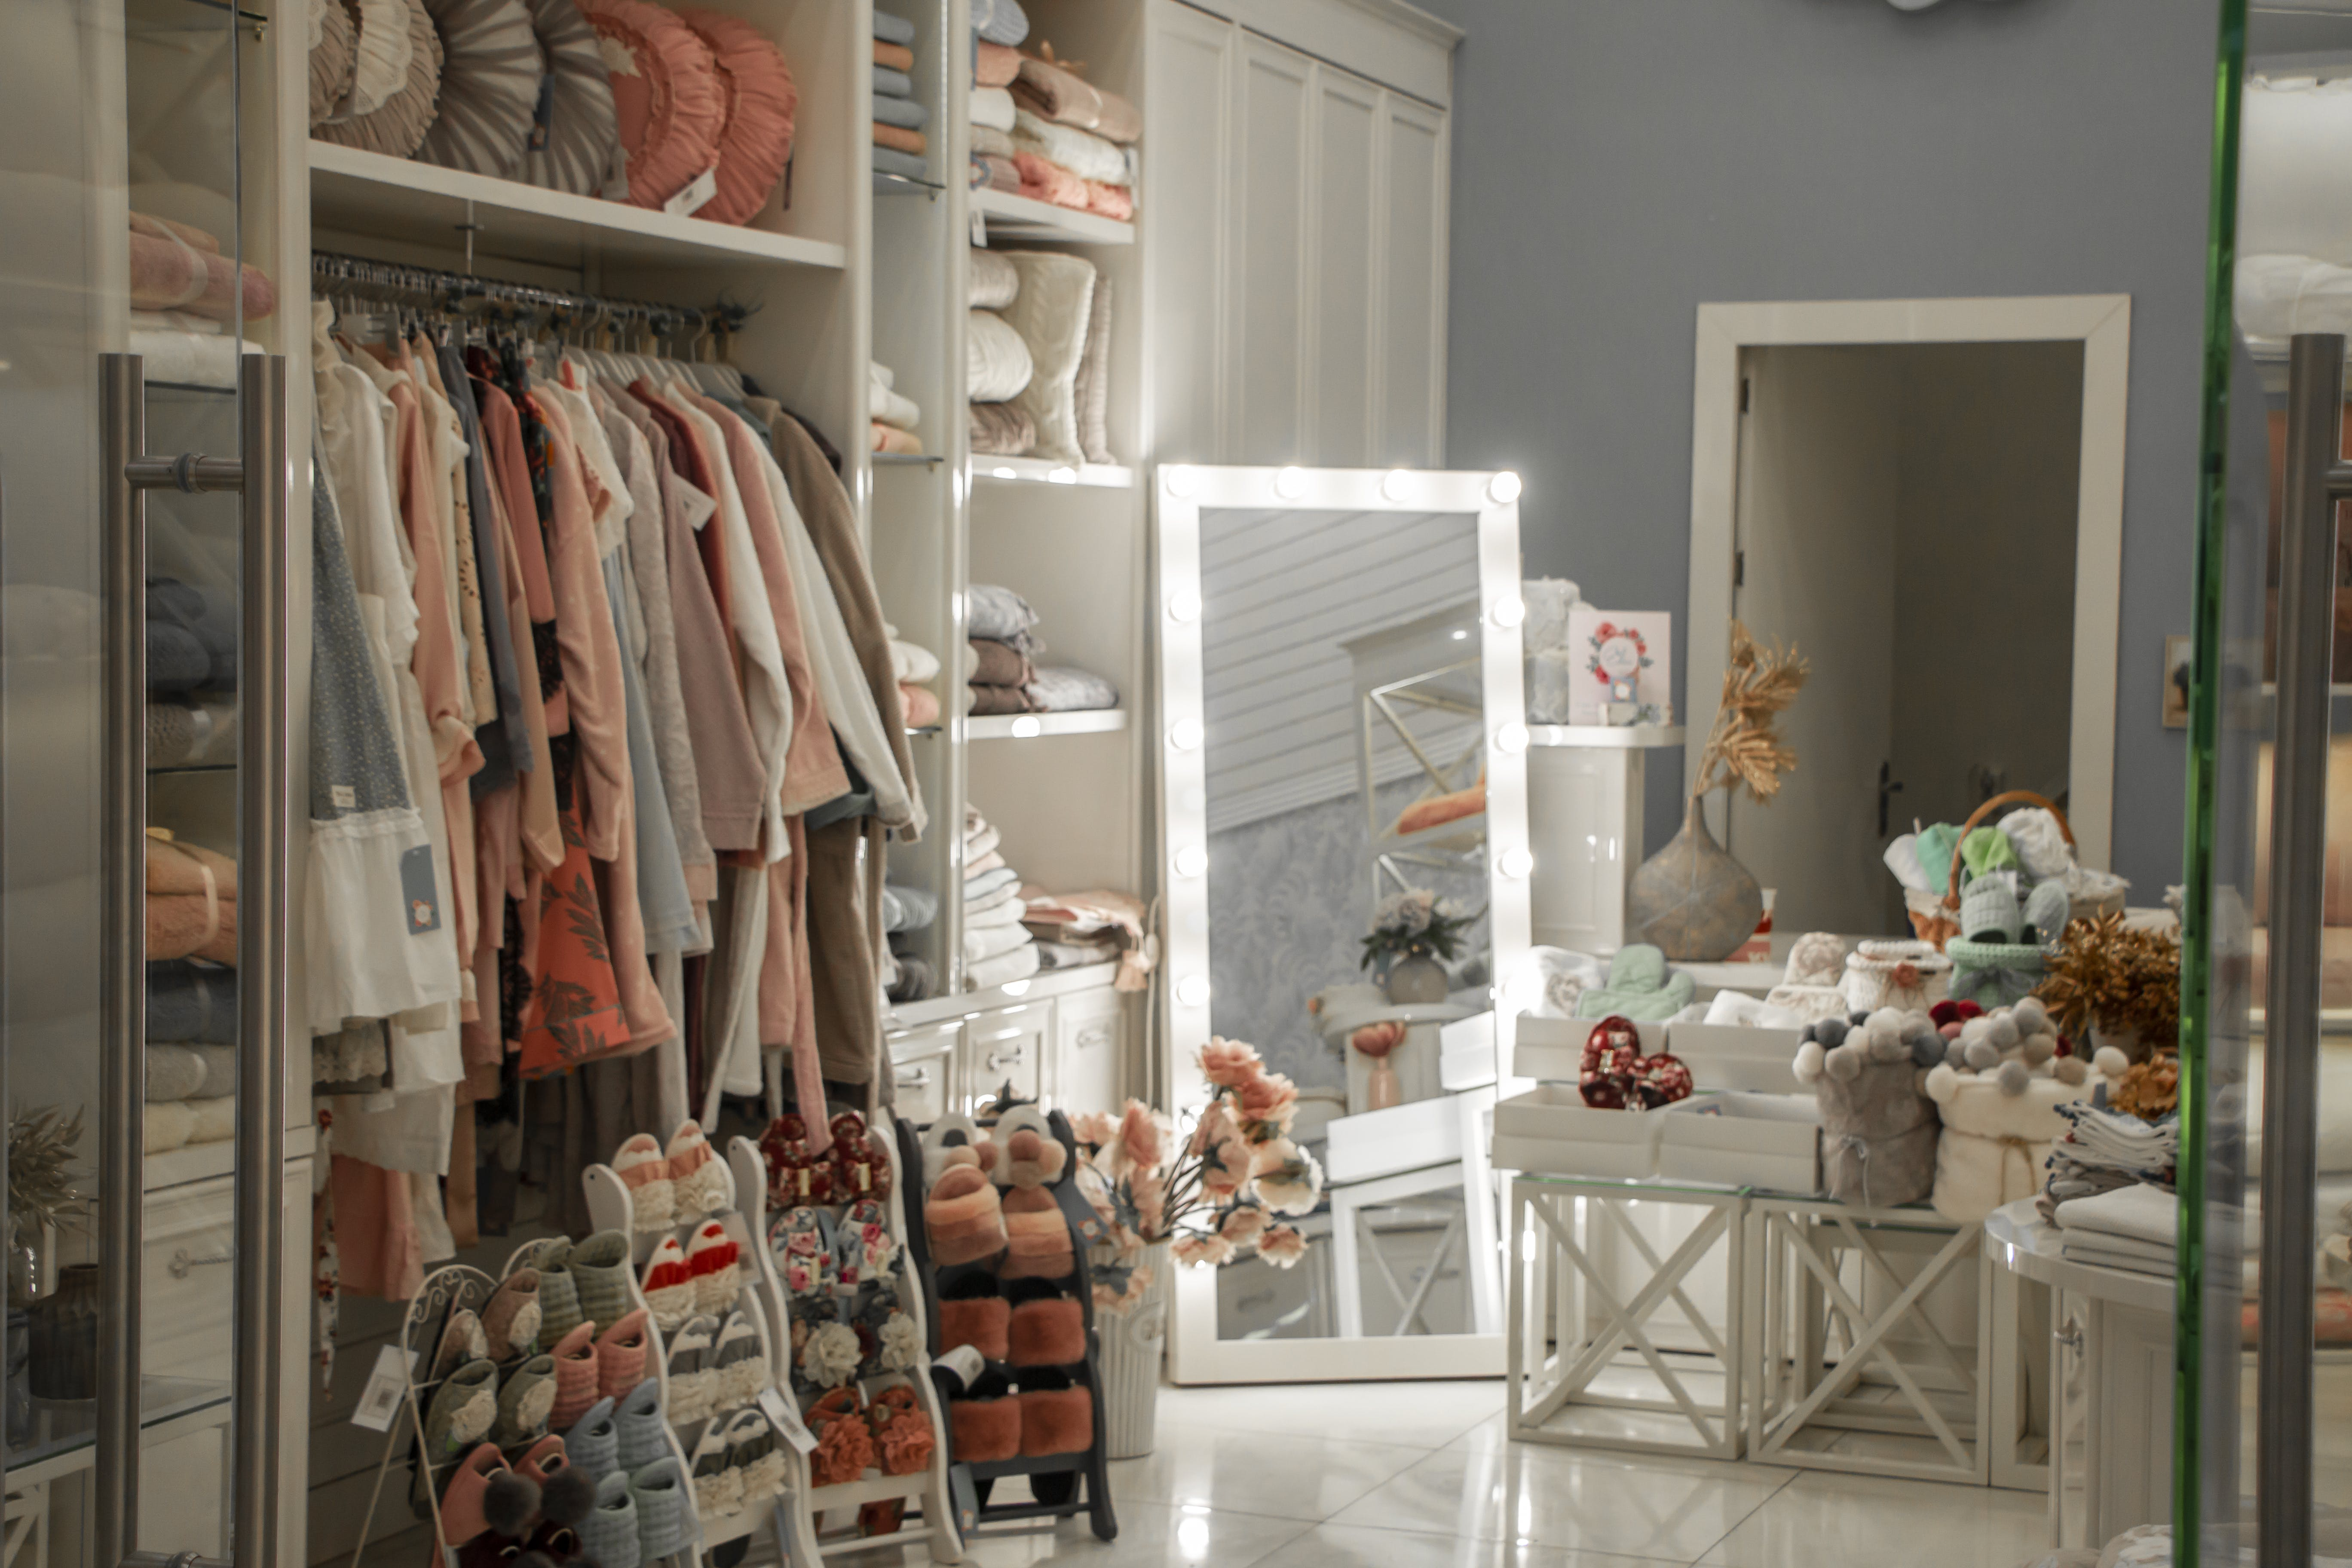 Room Filled with Clothes